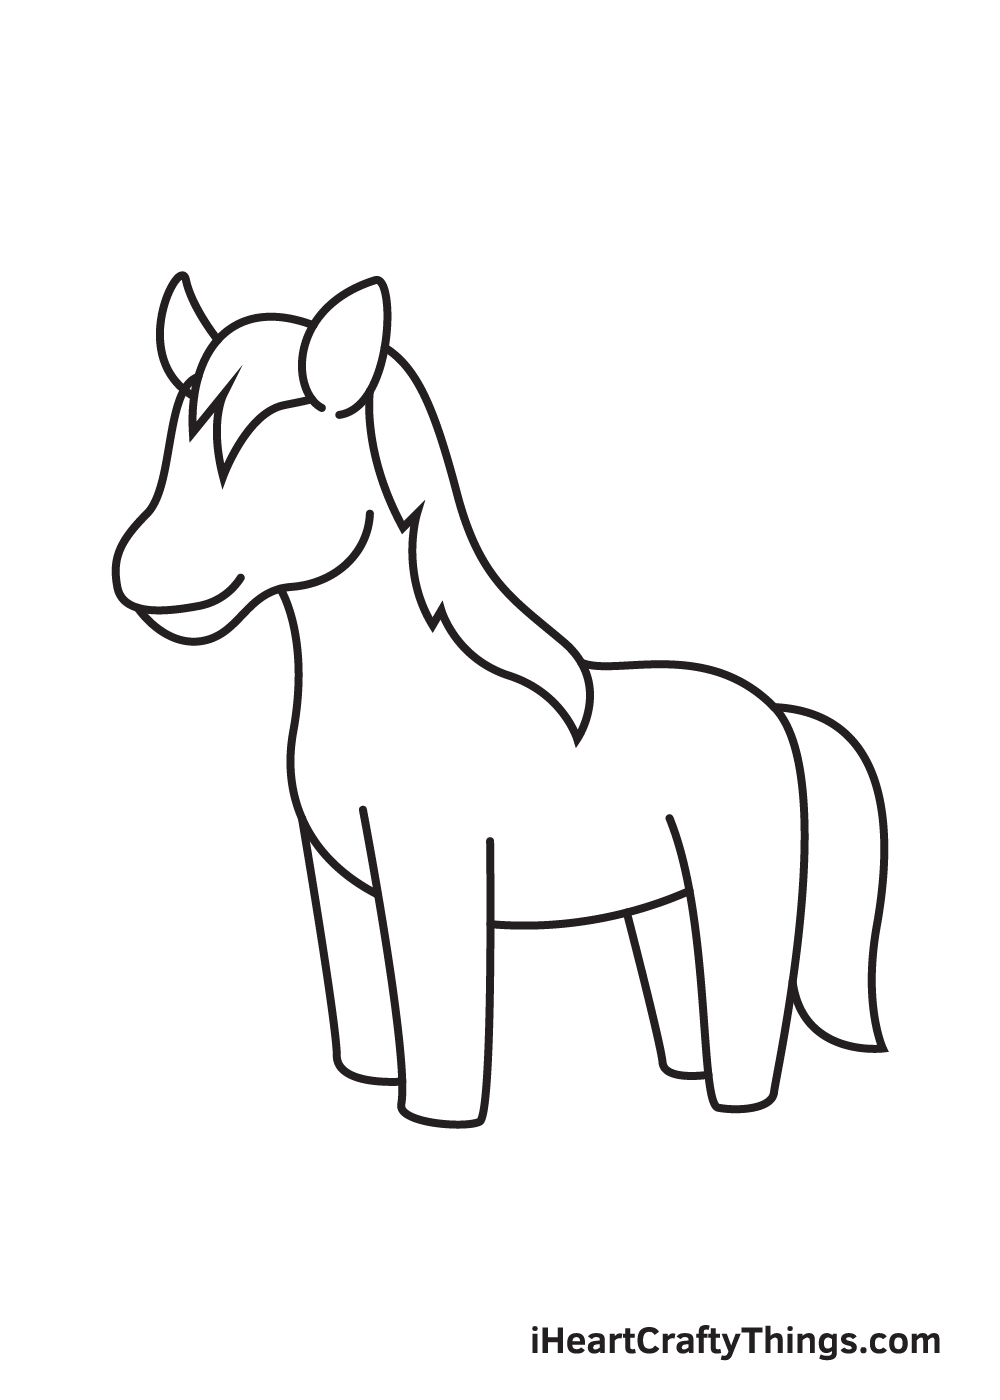 horse drawing - step 7